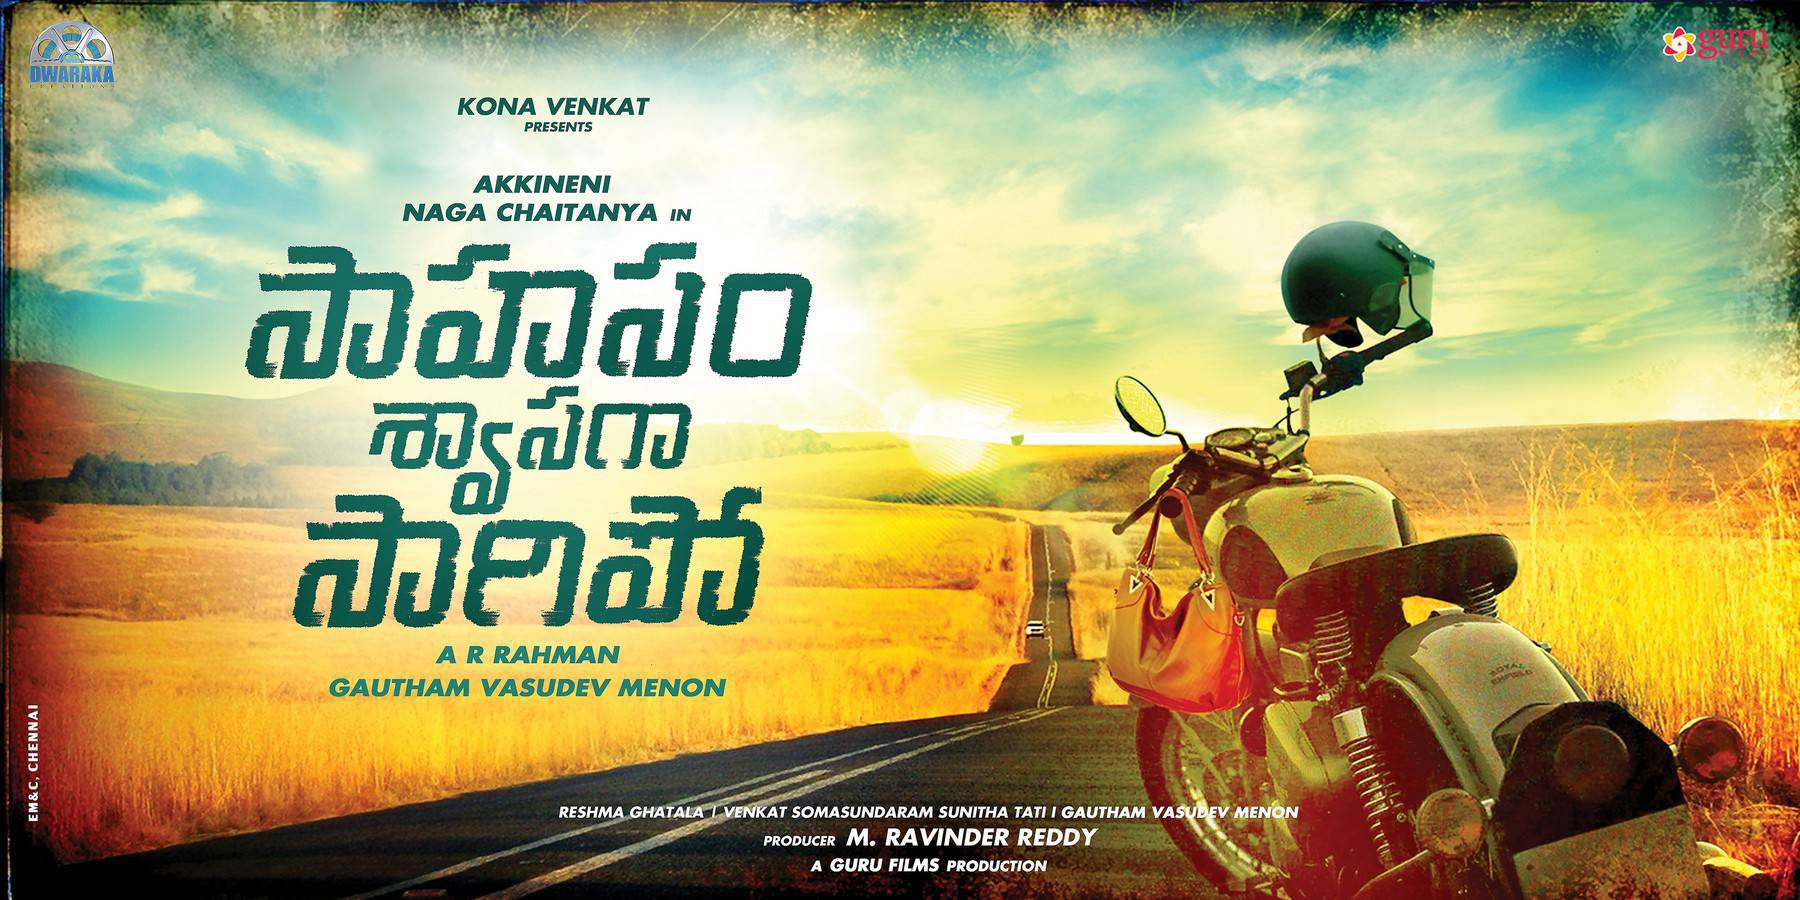 Saahasam swaasaga saagipo movie poster